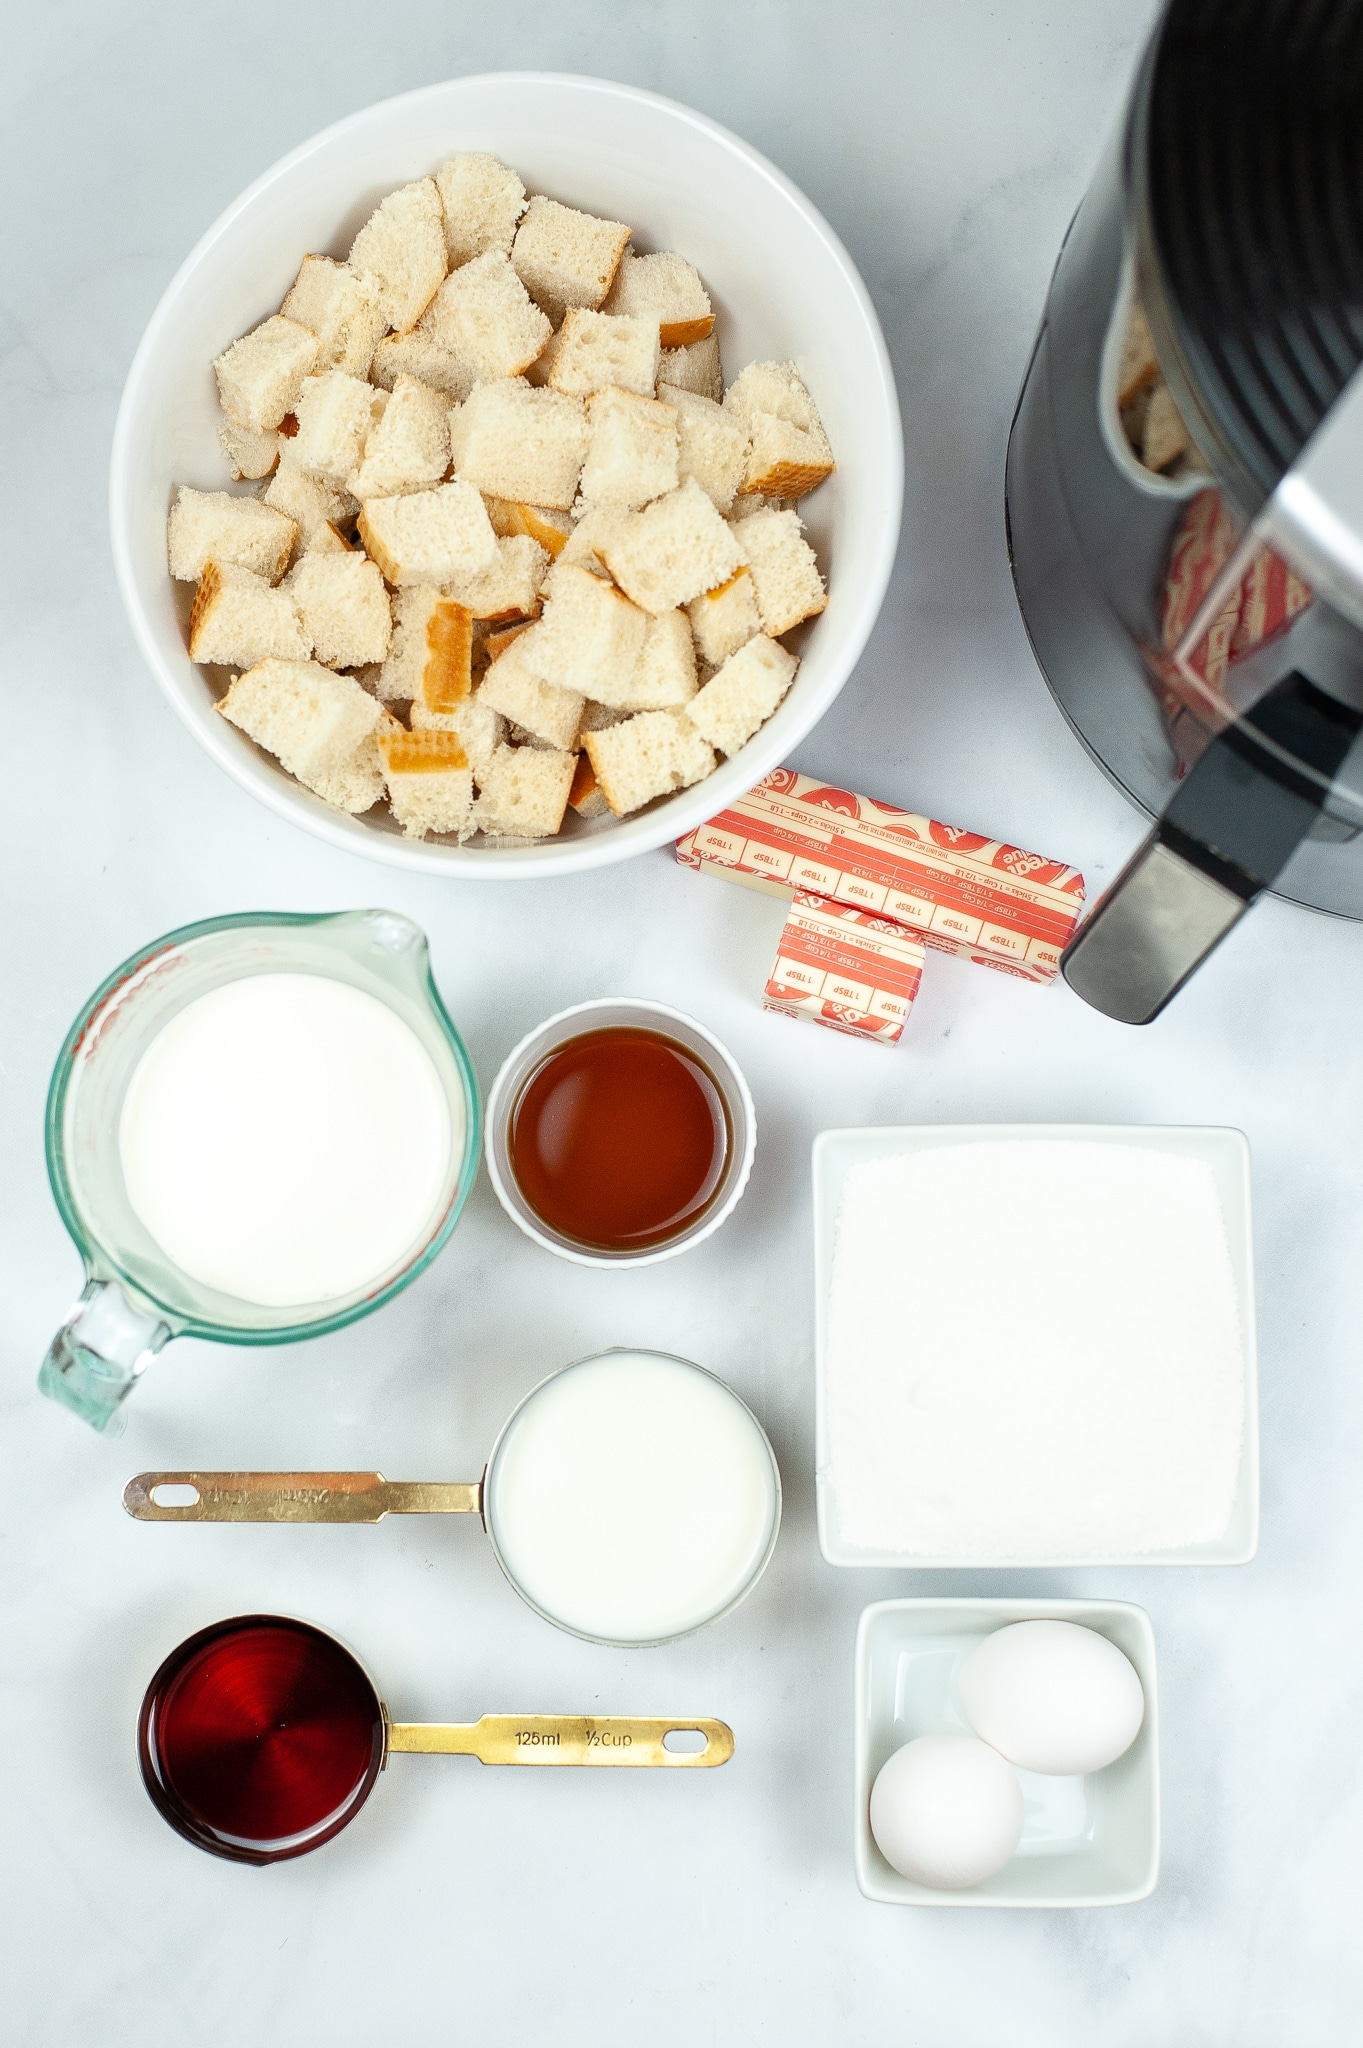 ingredients needed to make bread pudding